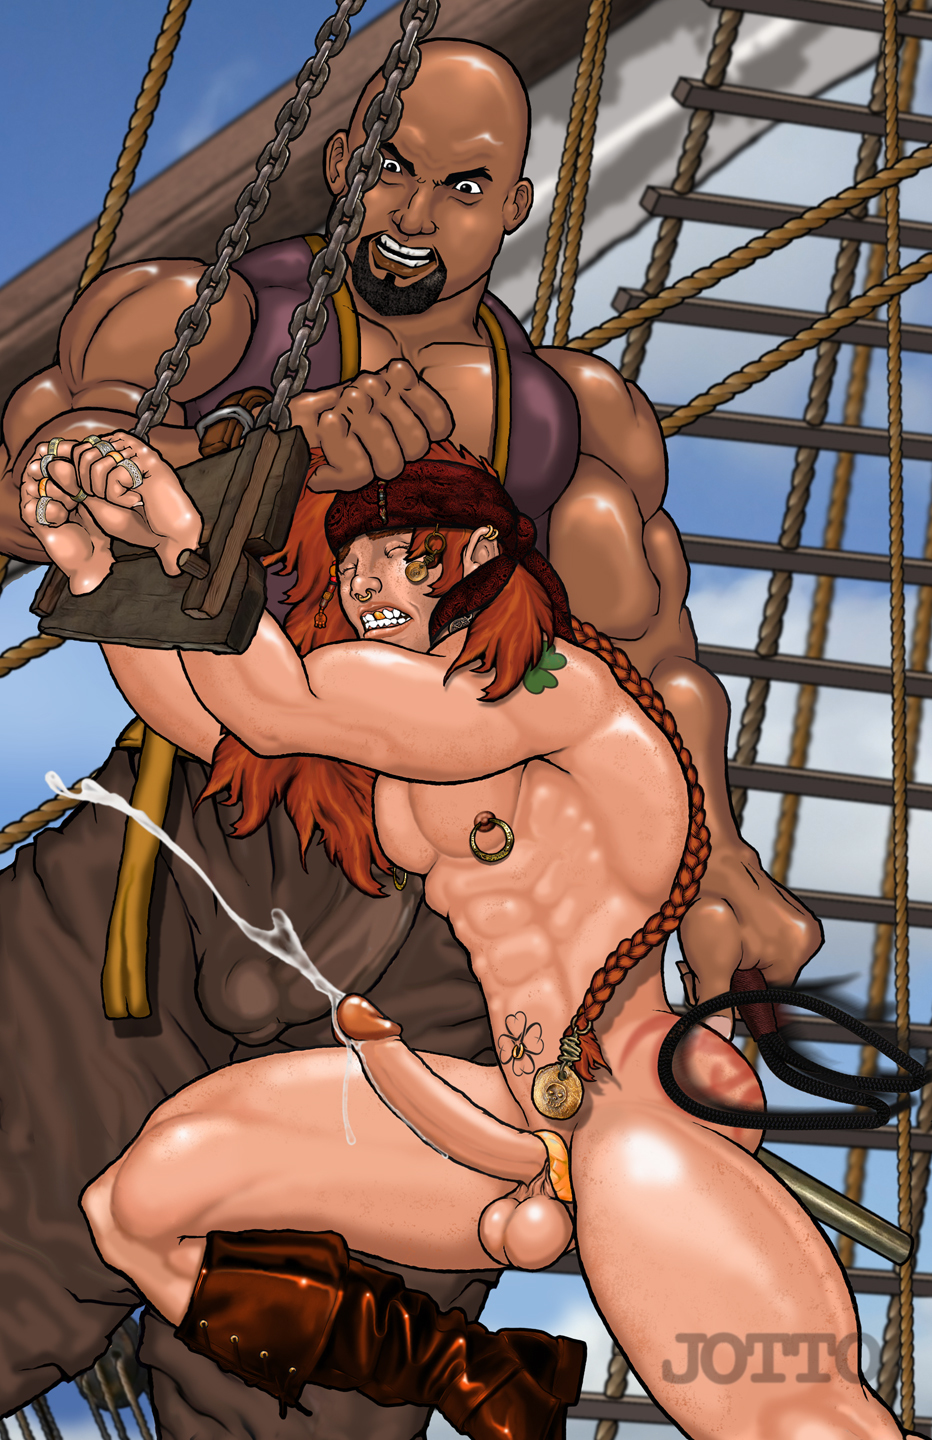 Hot nude pirate girl fucking gallery